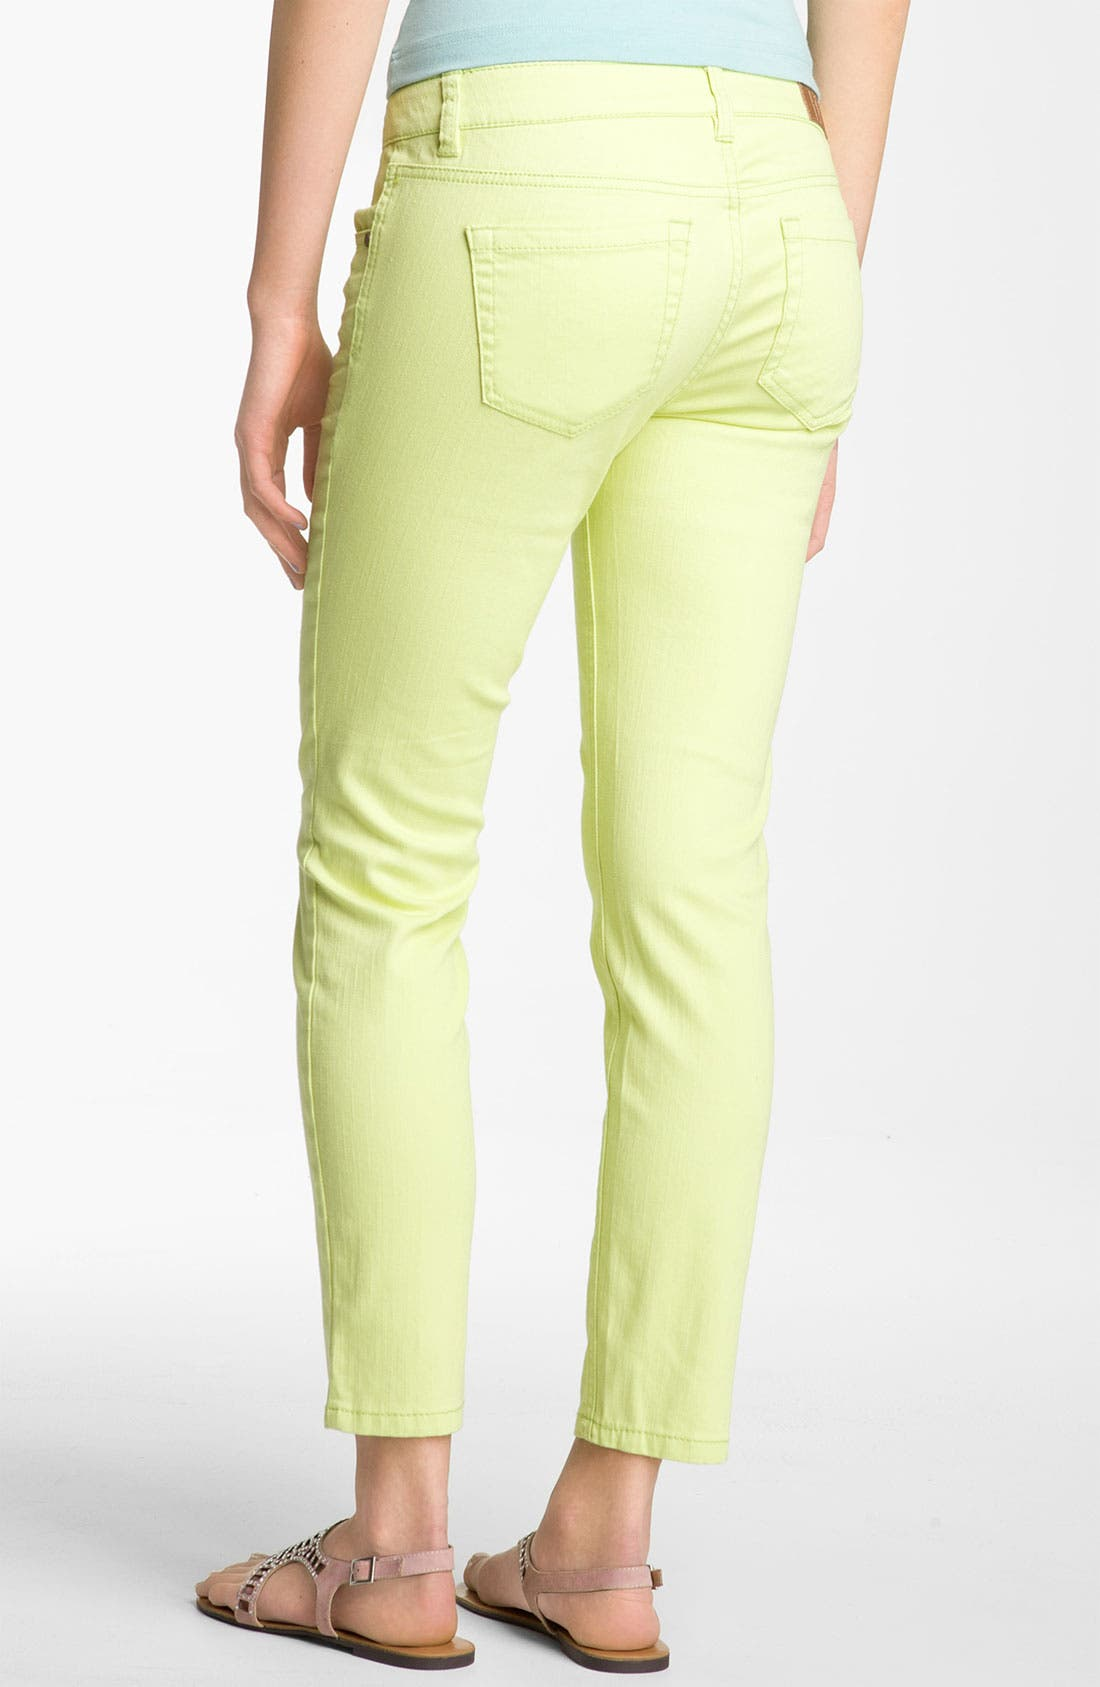 Alternate Image 1 Selected - Fire Color Skinny Ankle Jeans (Juniors)